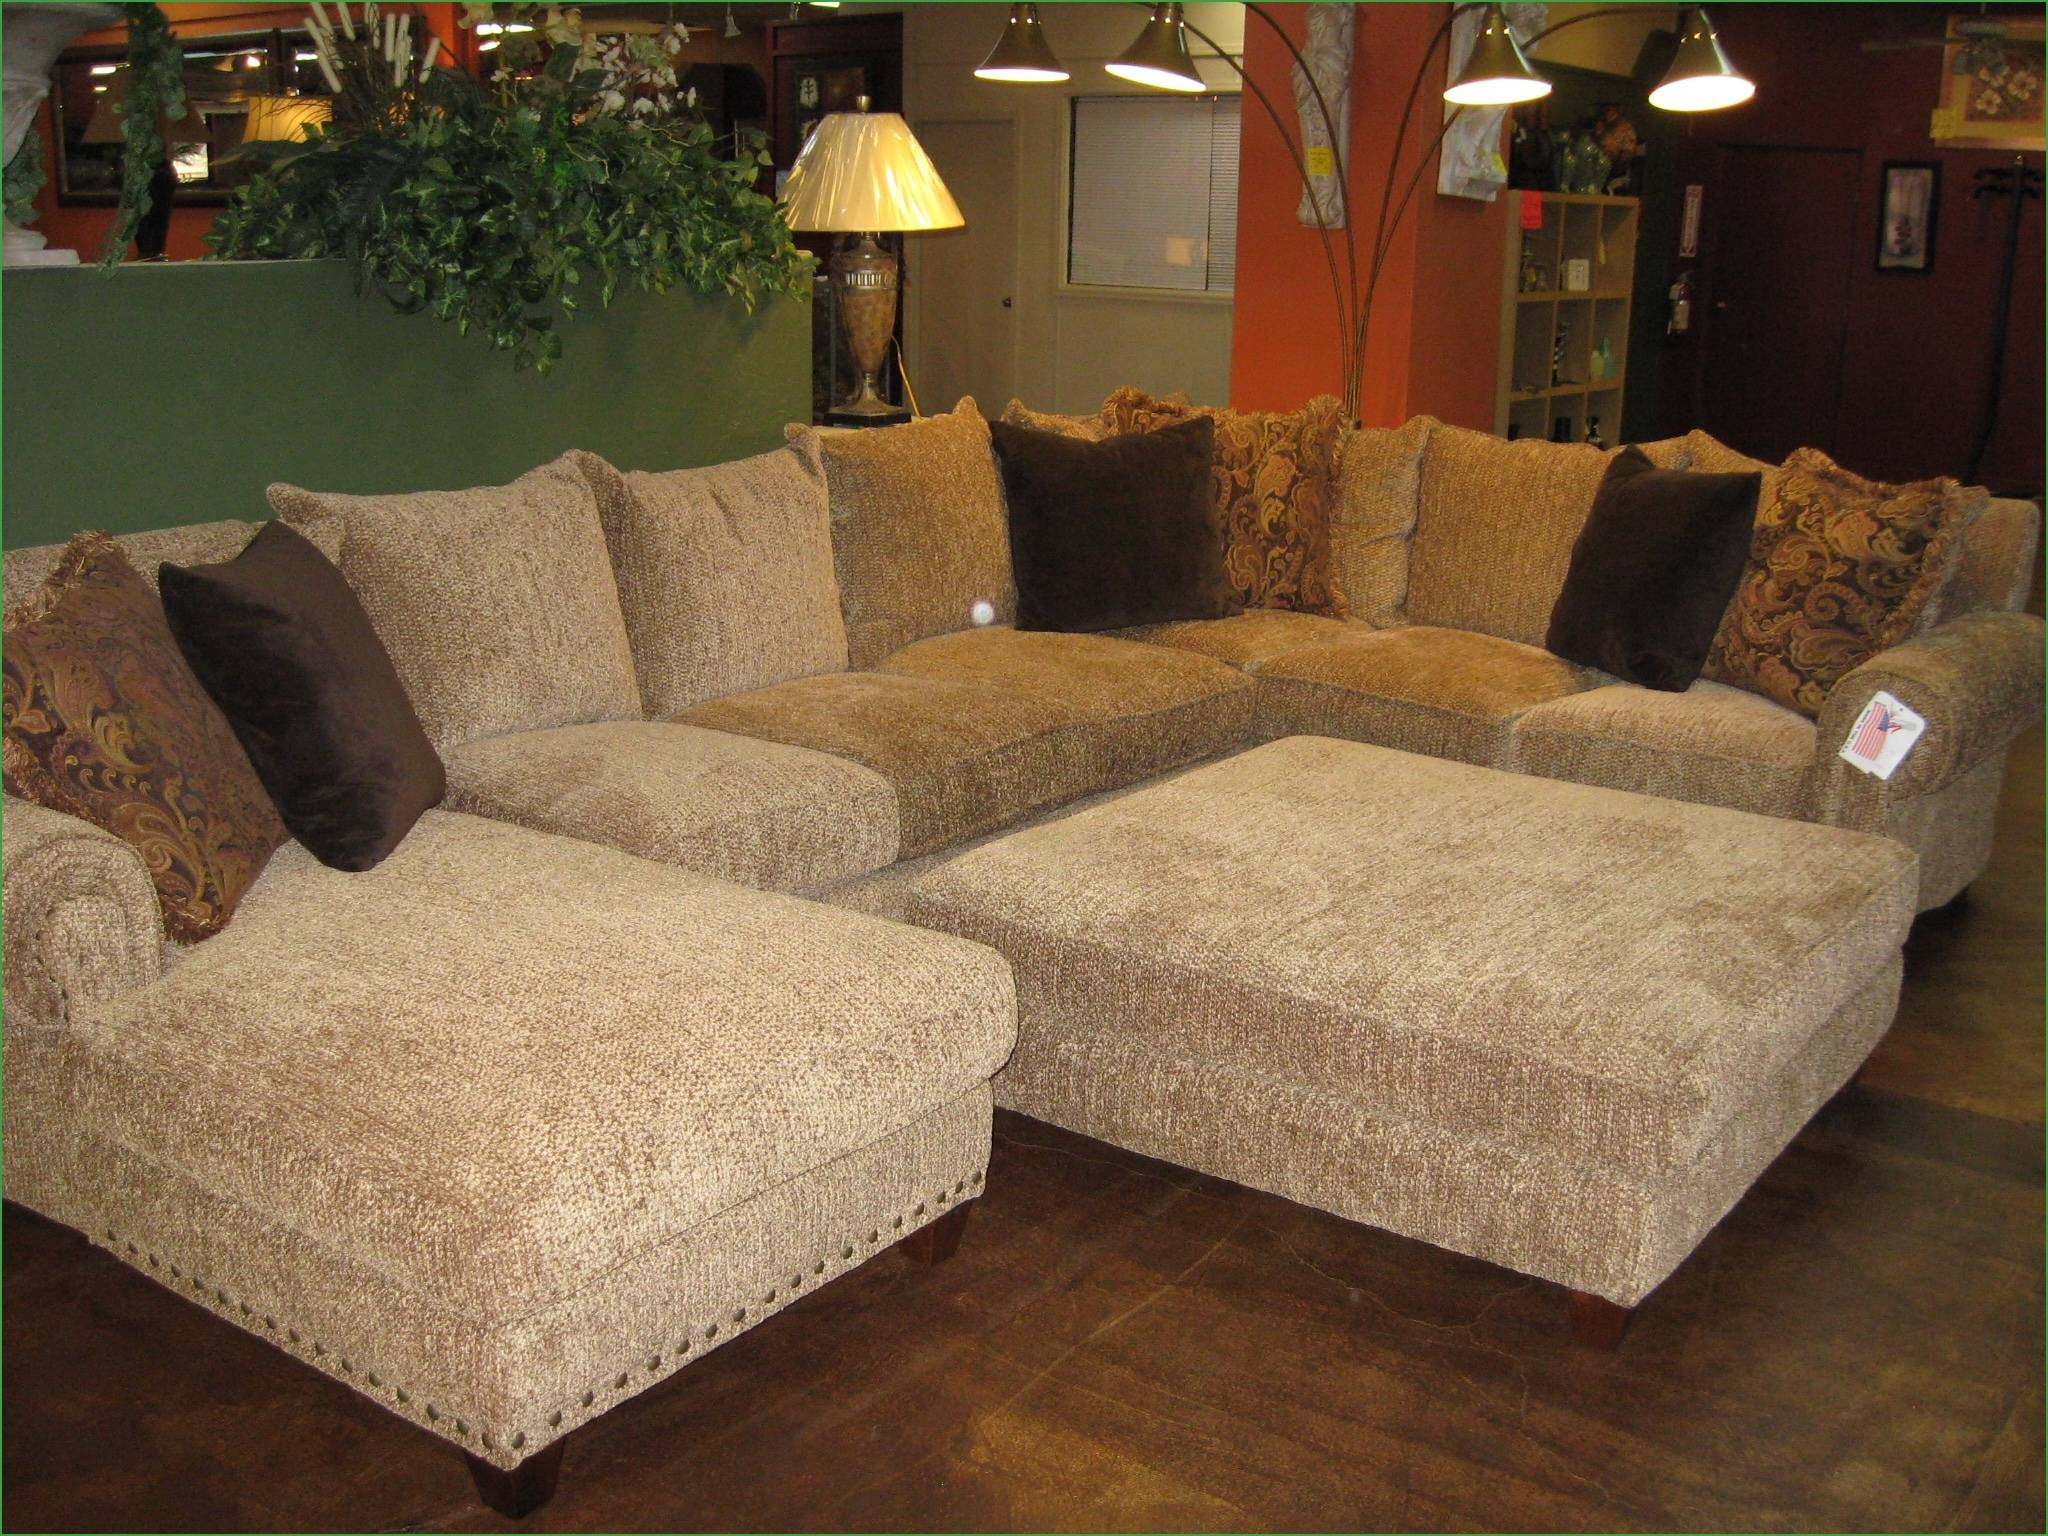 Sofas Center : Large Sectional Sofa With Ottoman Inspiring Pit intended for Pit Sofas (Image 20 of 30)